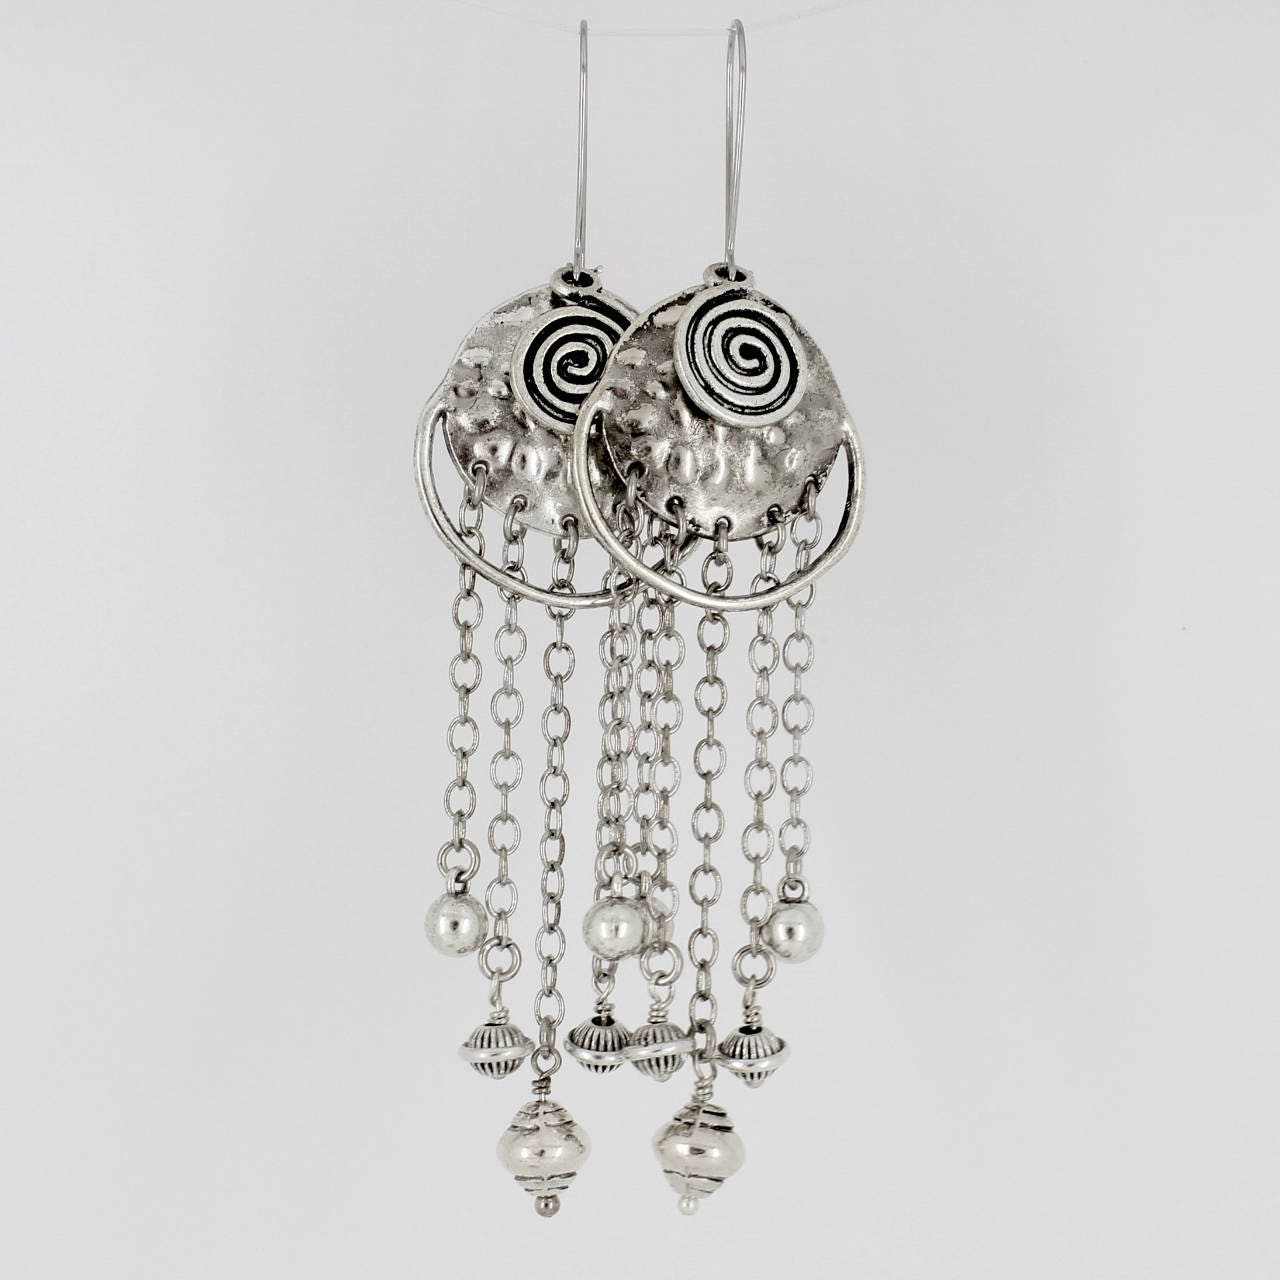 Long,Bohemian,Earrings,Jewelry,dangle_earrings,gift_for_her,unusual_jewelry,newest_trends,sophisticated,classy_earrings,Tibetan_earrings,statement_earrings,Ethnic_earrings,Tribal_Earrings,silver_chains,Silver chains,connectors,beads,kidney wires,headpins,jumprings